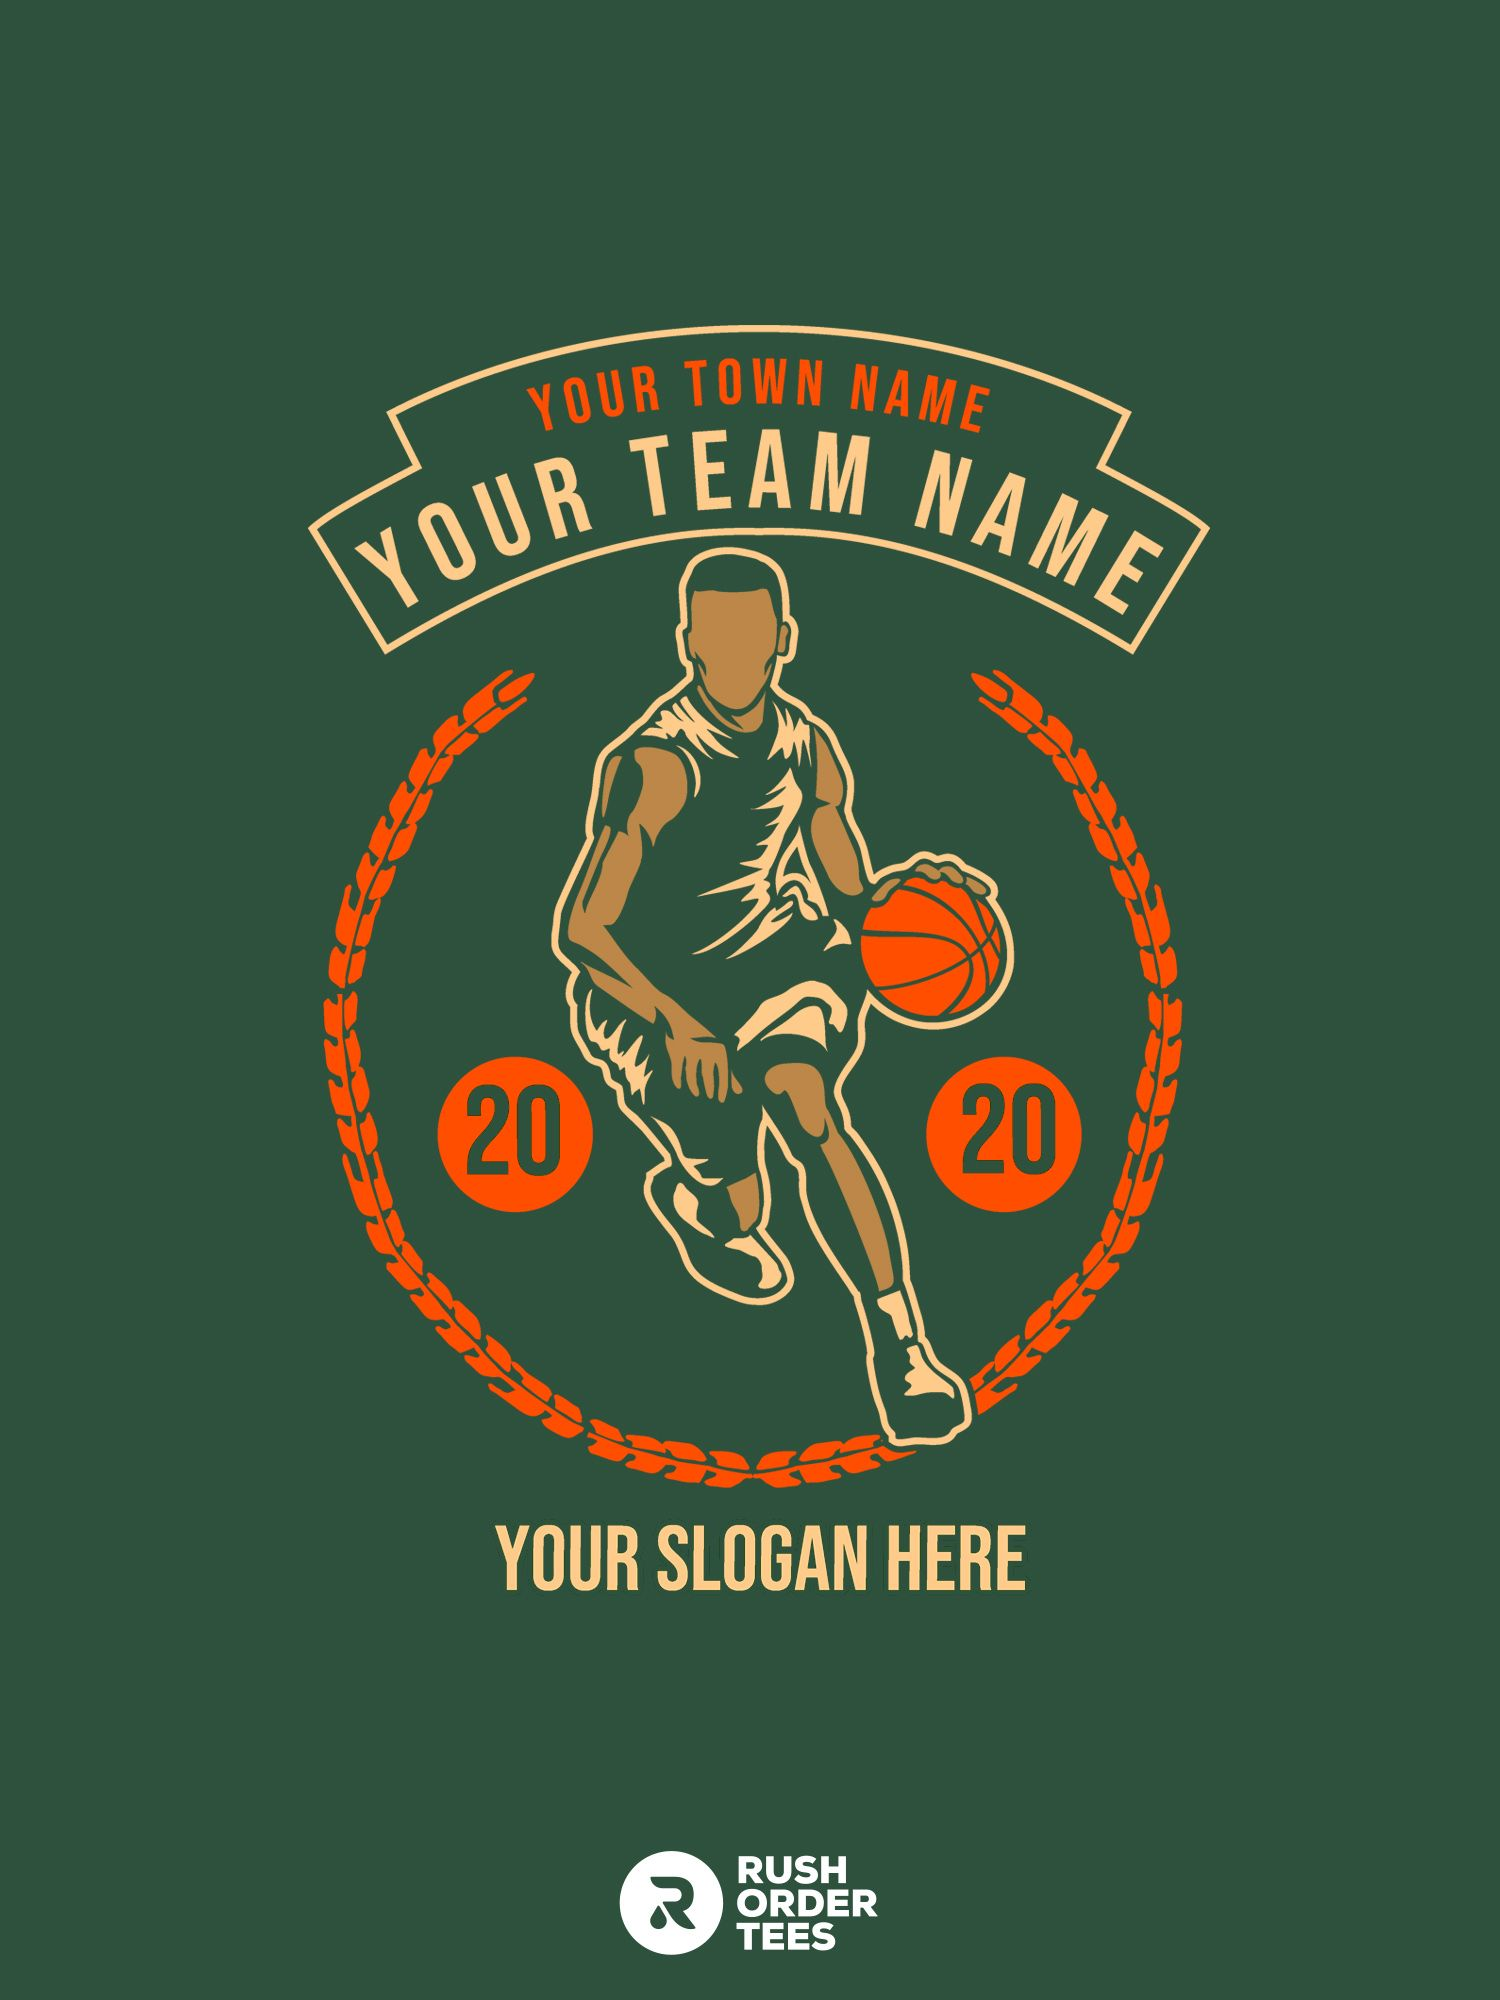 High School Basketball T Shirt Designs That Are Fully Customizable In 2020 Basketball T Shirt Designs Custom Tshirt Design Custom Shirts